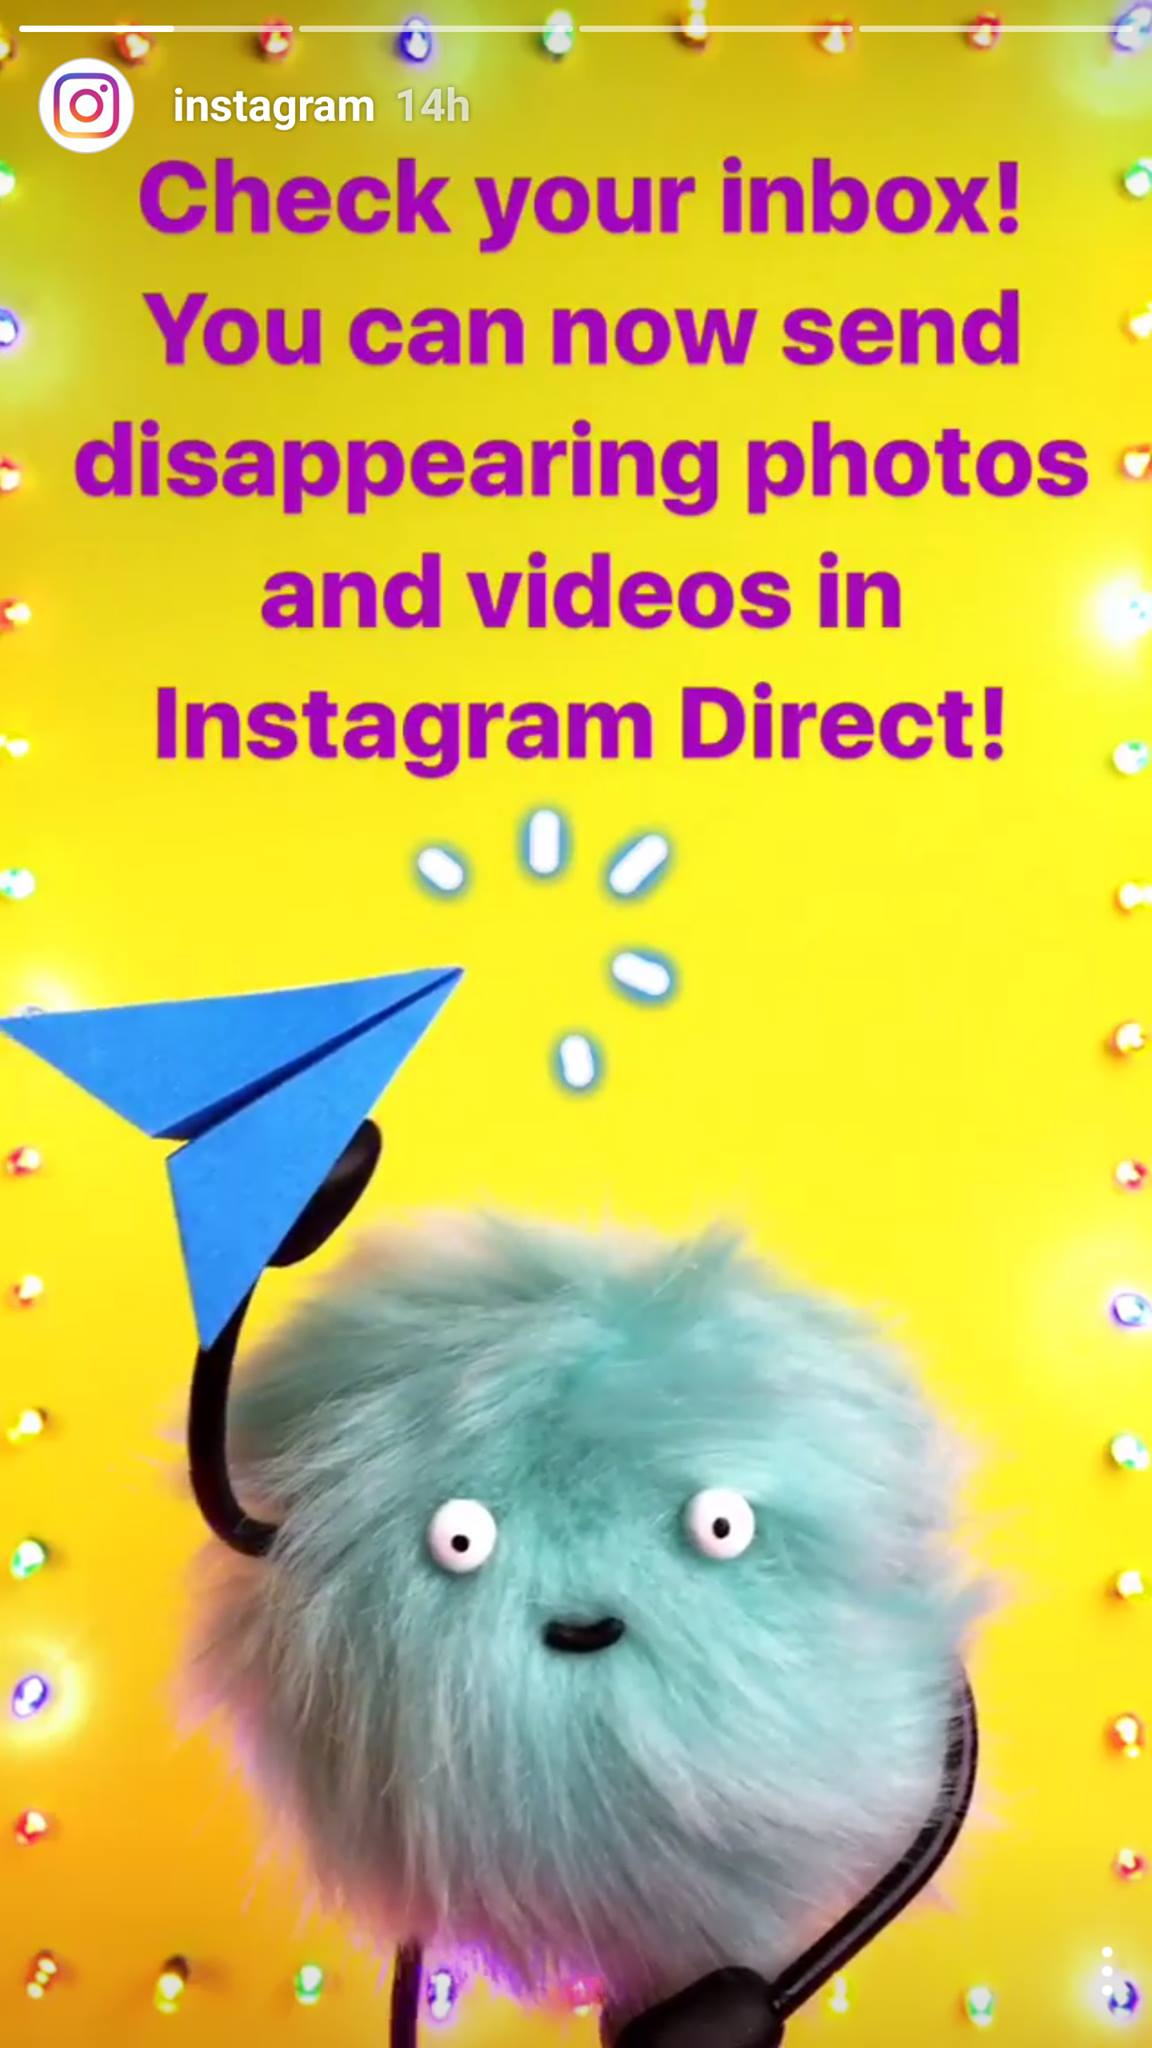 Instagram's new disappearing act